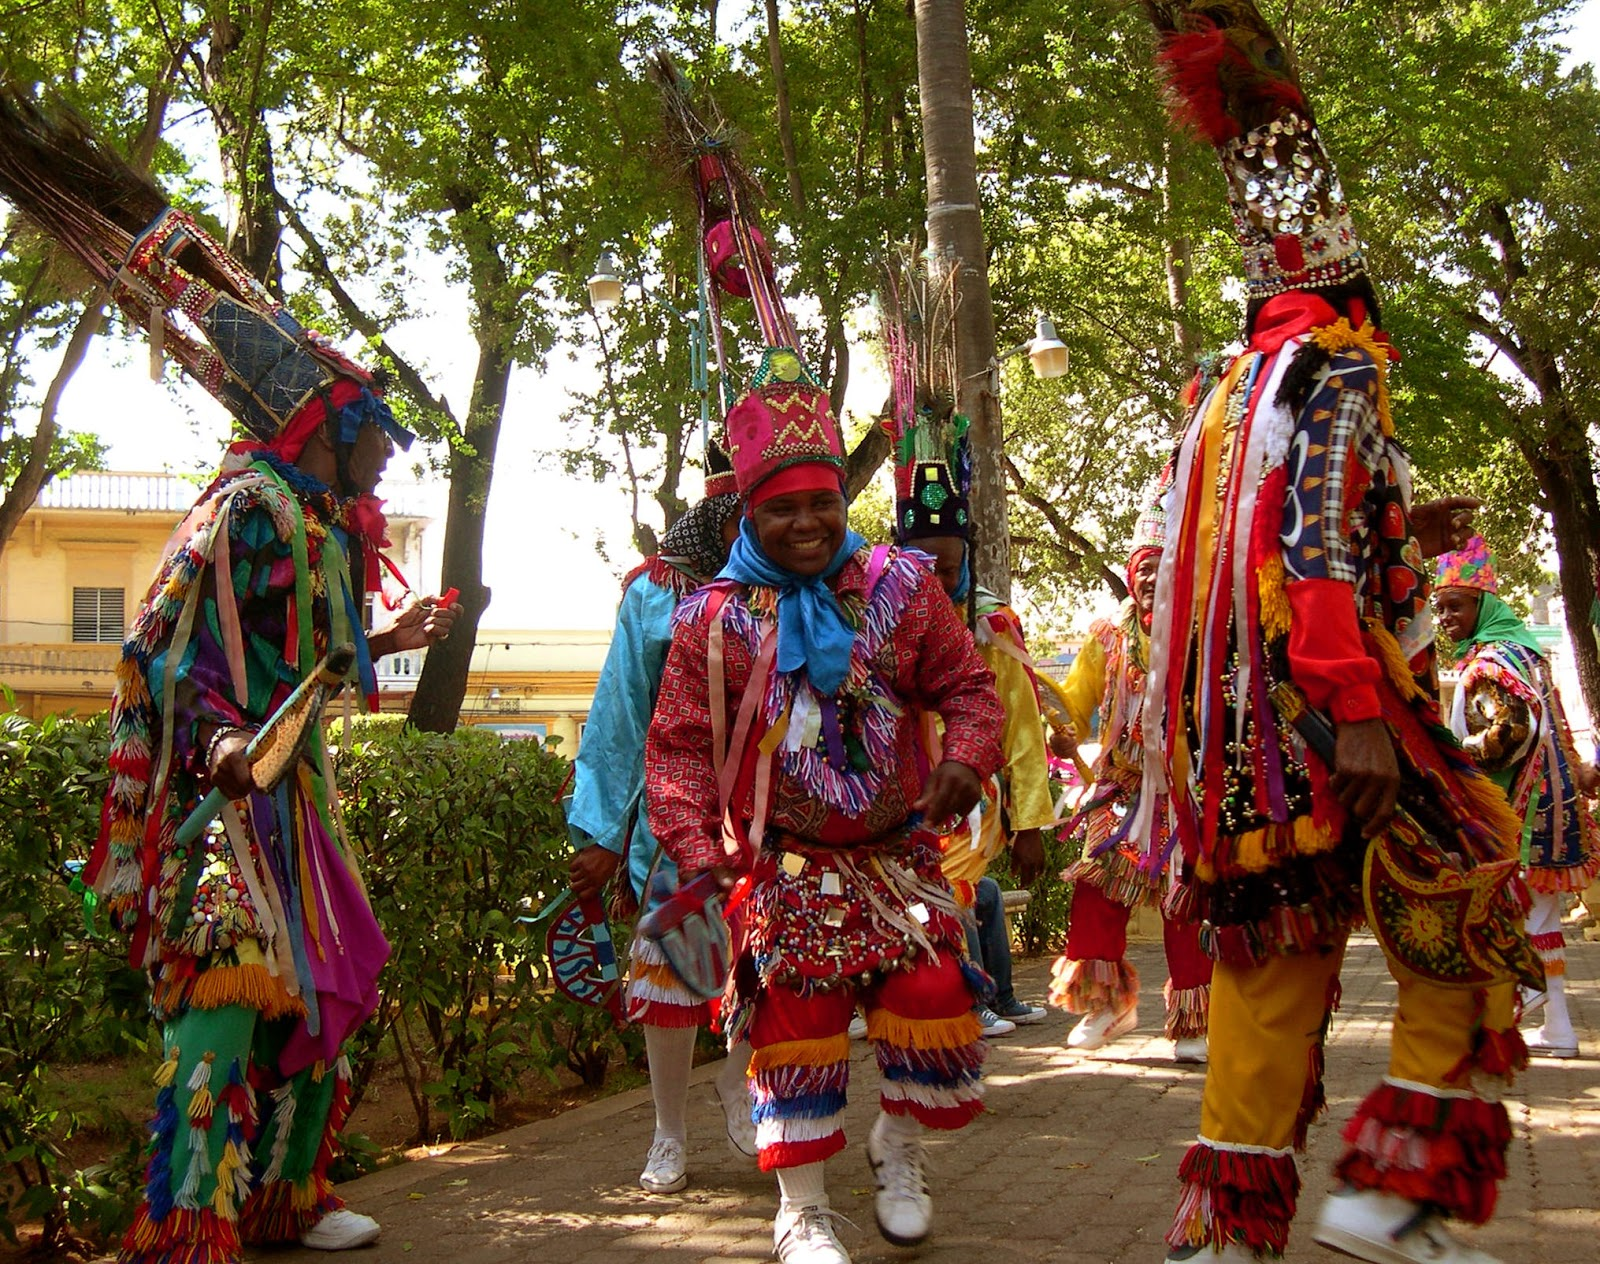 culture of the dominican republic Five of the best: the dominican republic has one of the most fascinating arrays of annual fiestas in latin america fiestas patronales, as they're known, range from culturally complex syncretisms of.